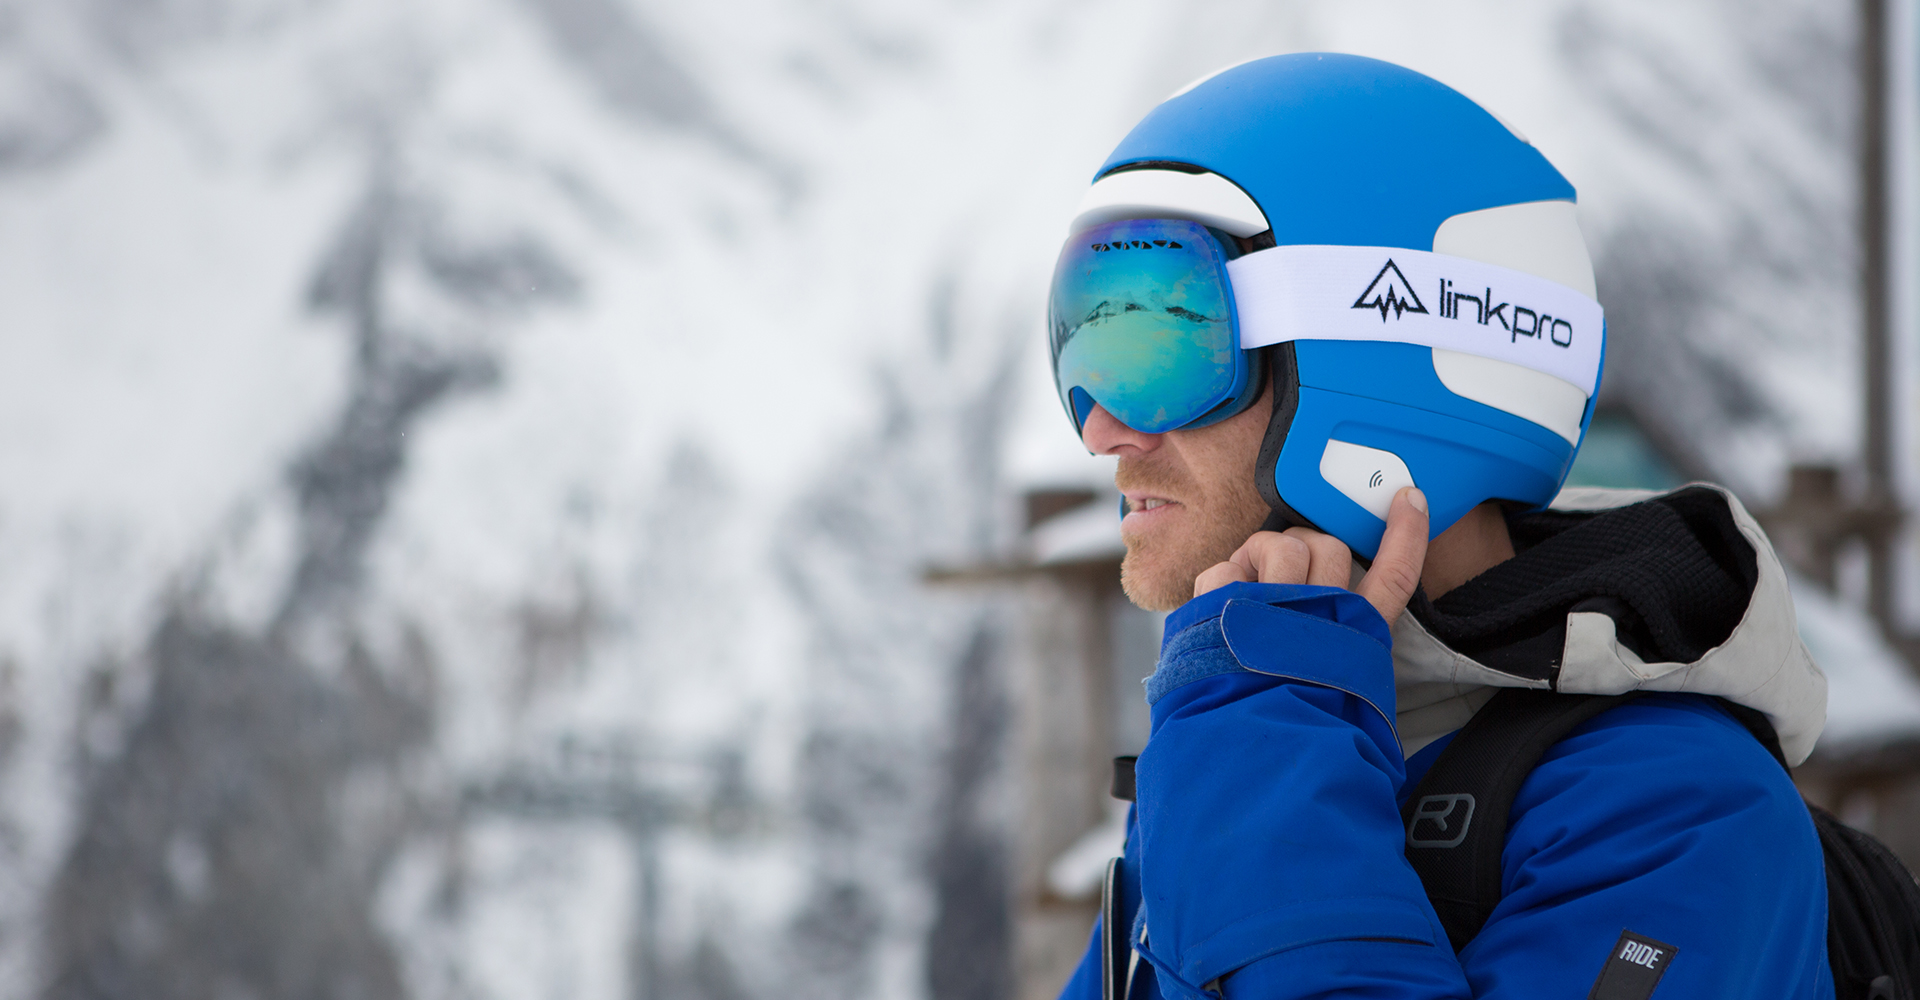 Link Pro - Curventa - In situ - snowboard - helmet - communication - headphones